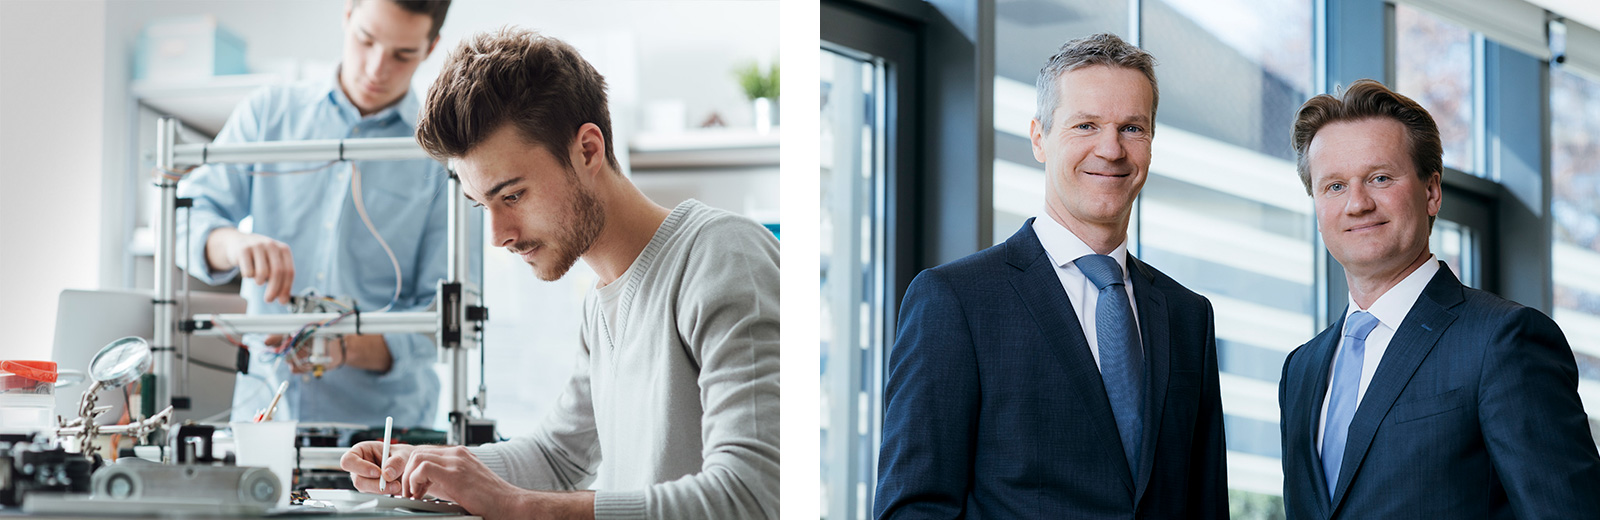 Links: Knill-Produktion, rechts: Management in Familienhand: Christian Knill und Georg Knill